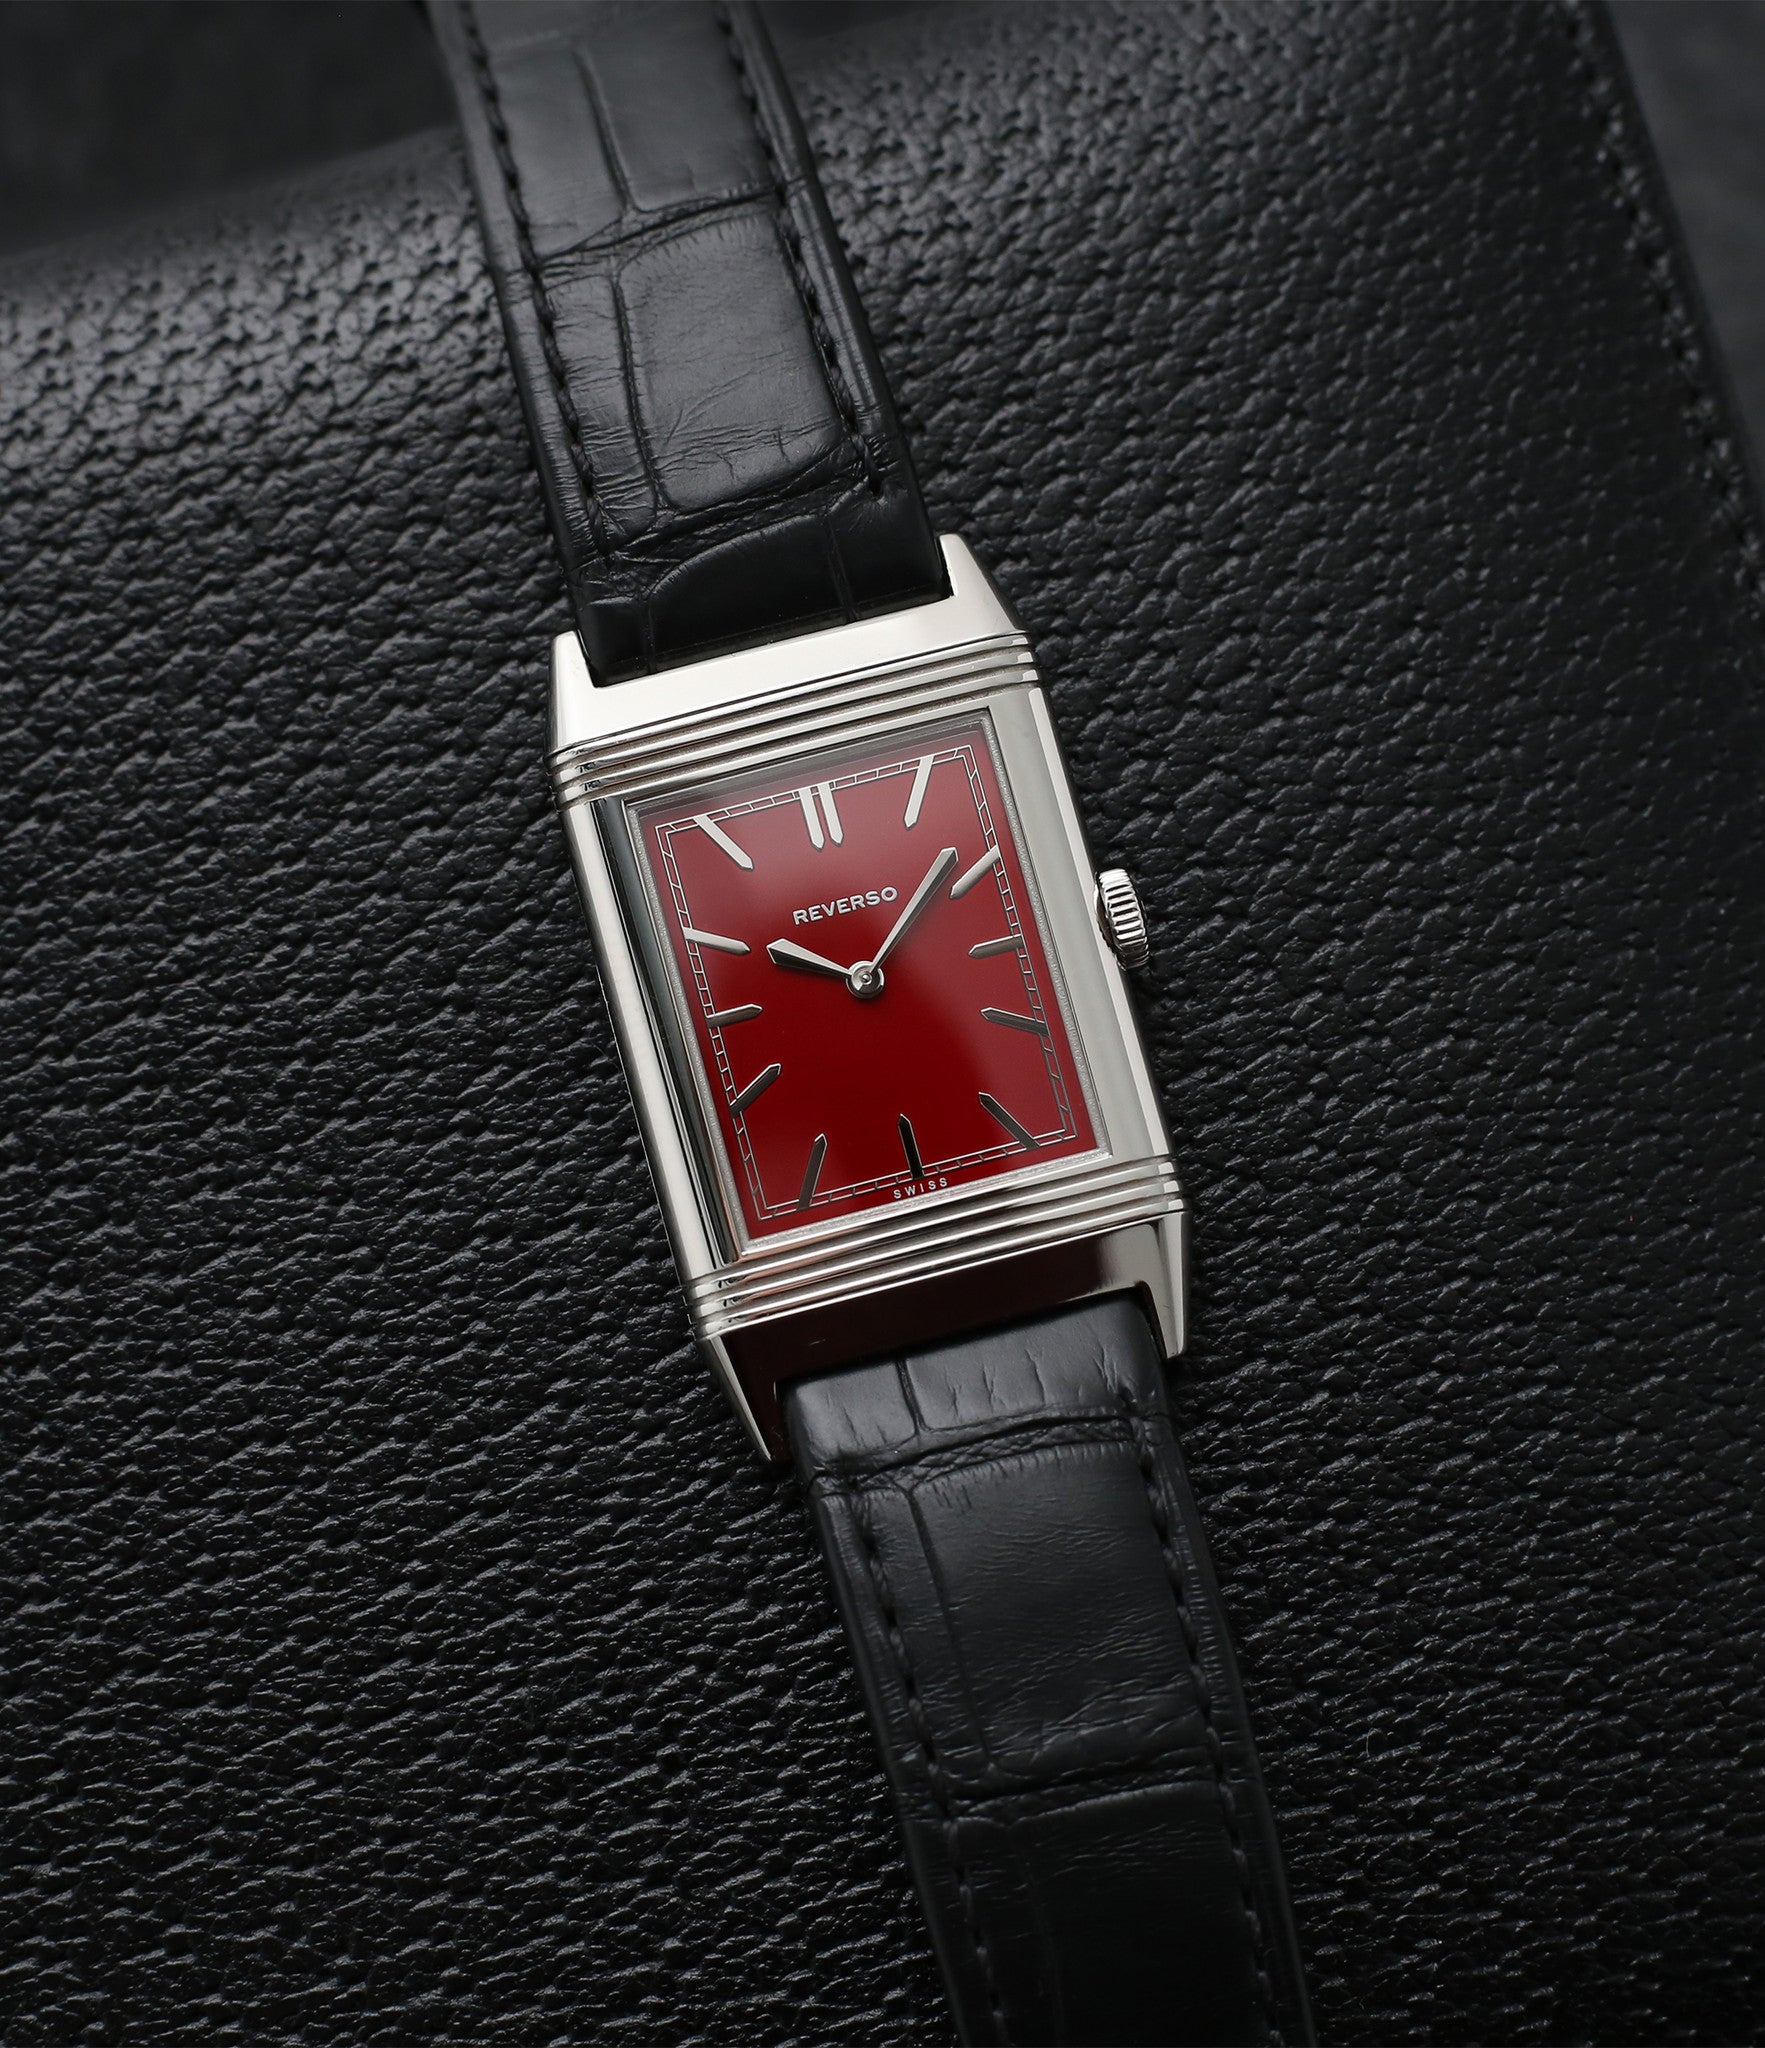 gentleman's luxury Jaeger-LeCoultre Reverso 1931 Rouge red lacquer dial dress watch online at a Collected Man London for sale